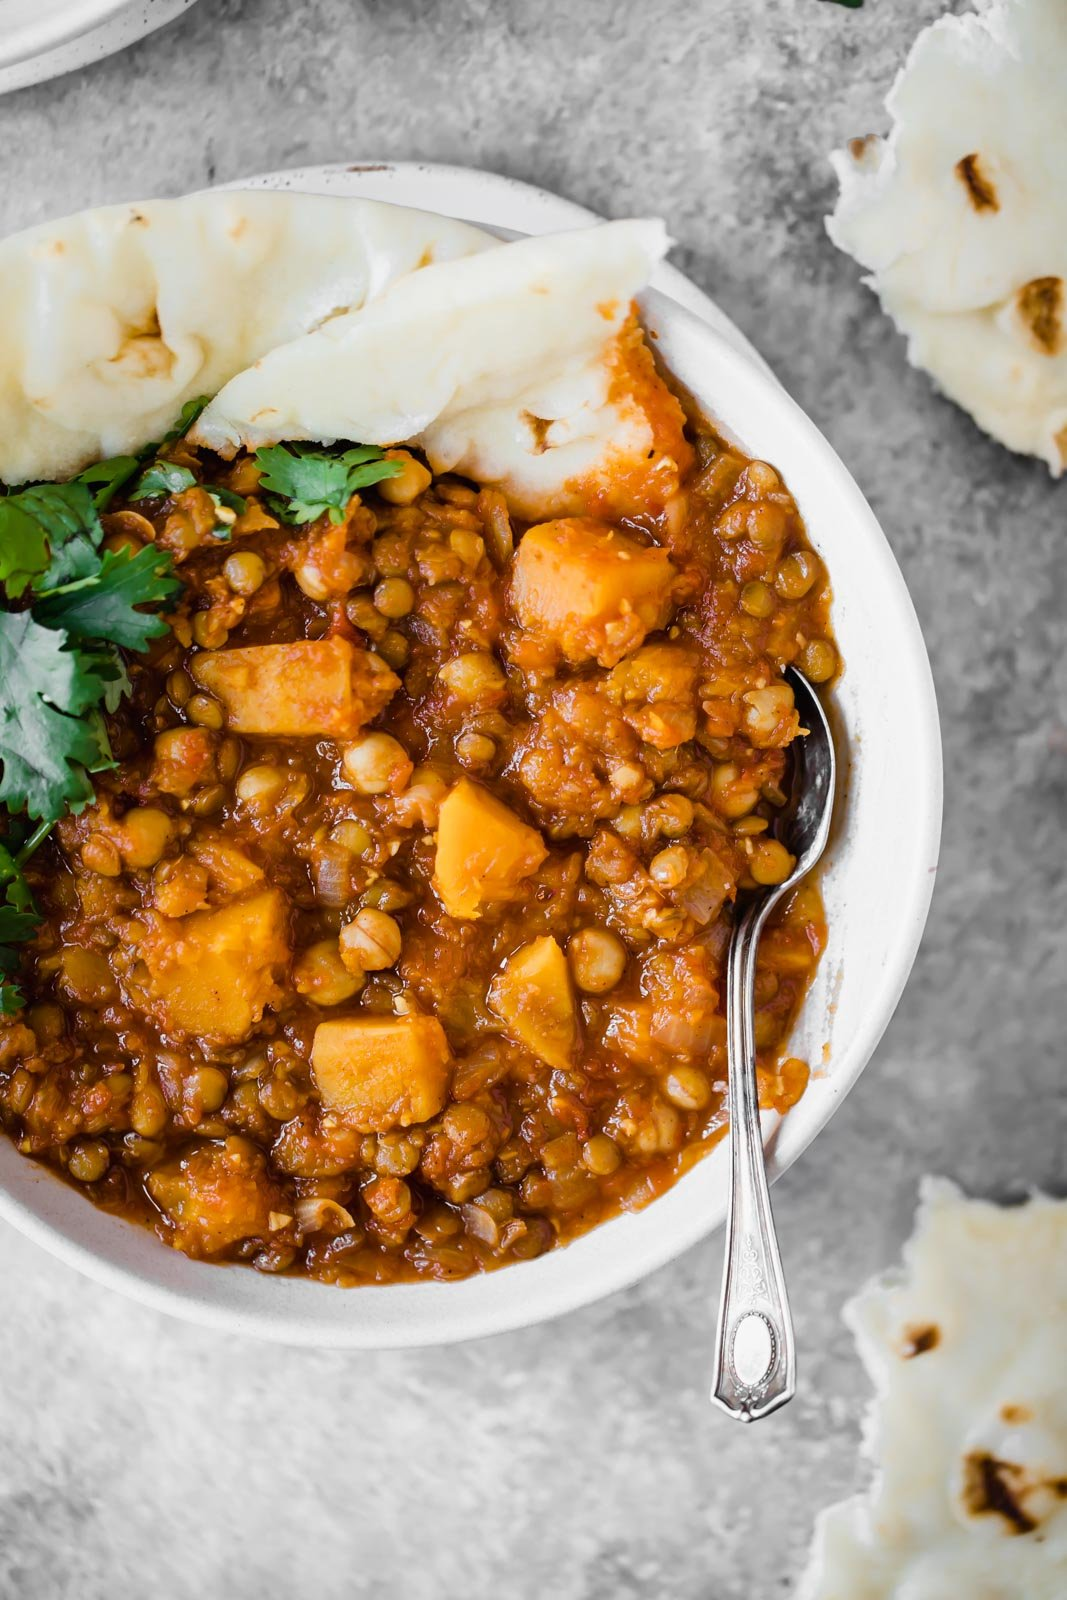 butternut squash chickpea lentil moroccan stew in a bowl with pita